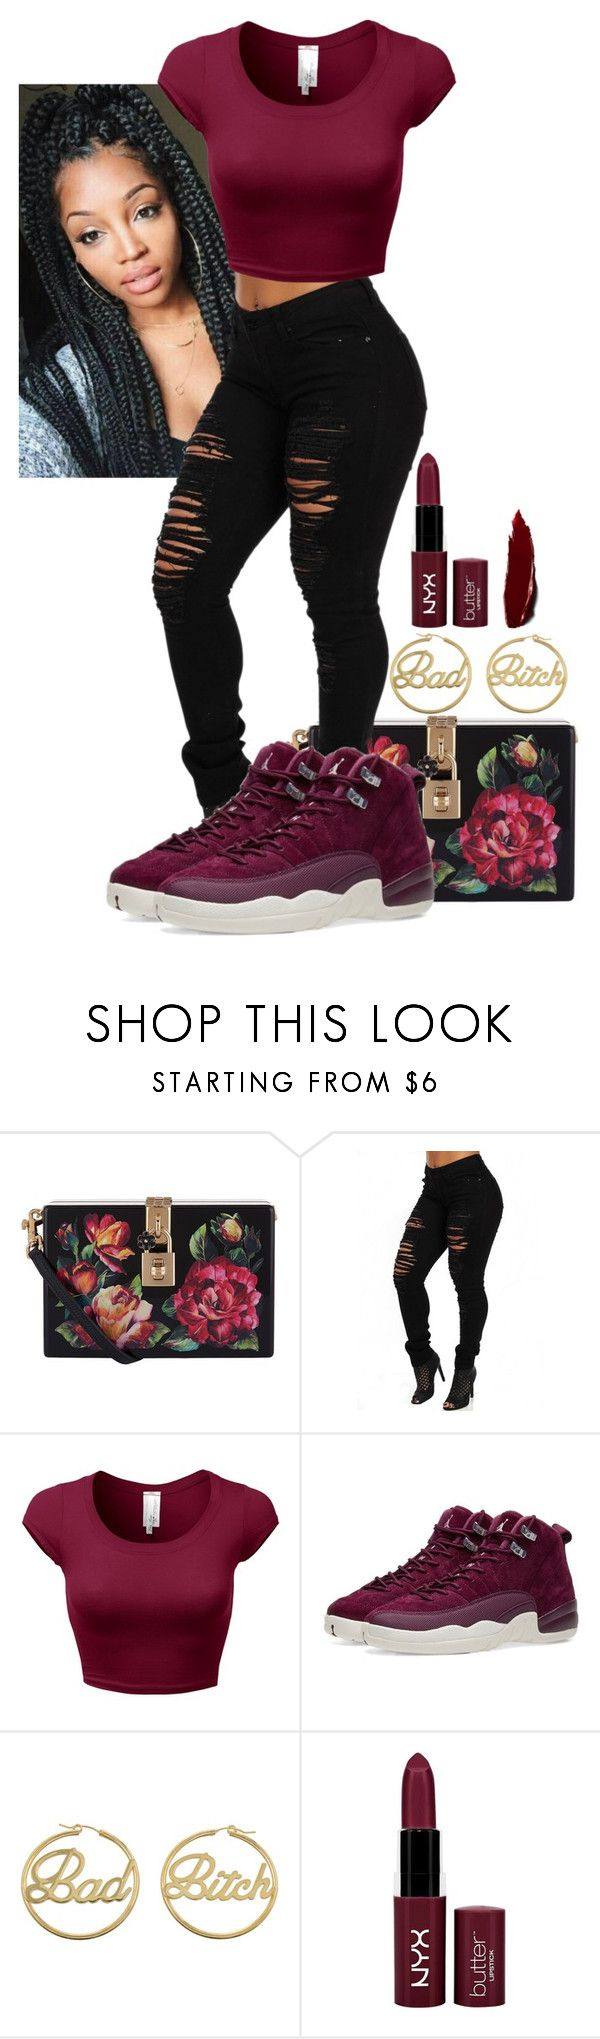 """Untitled #132"" by purple4048 on Polyvore featuring Dolce&Gabbana, NIKE, me you and NYX"